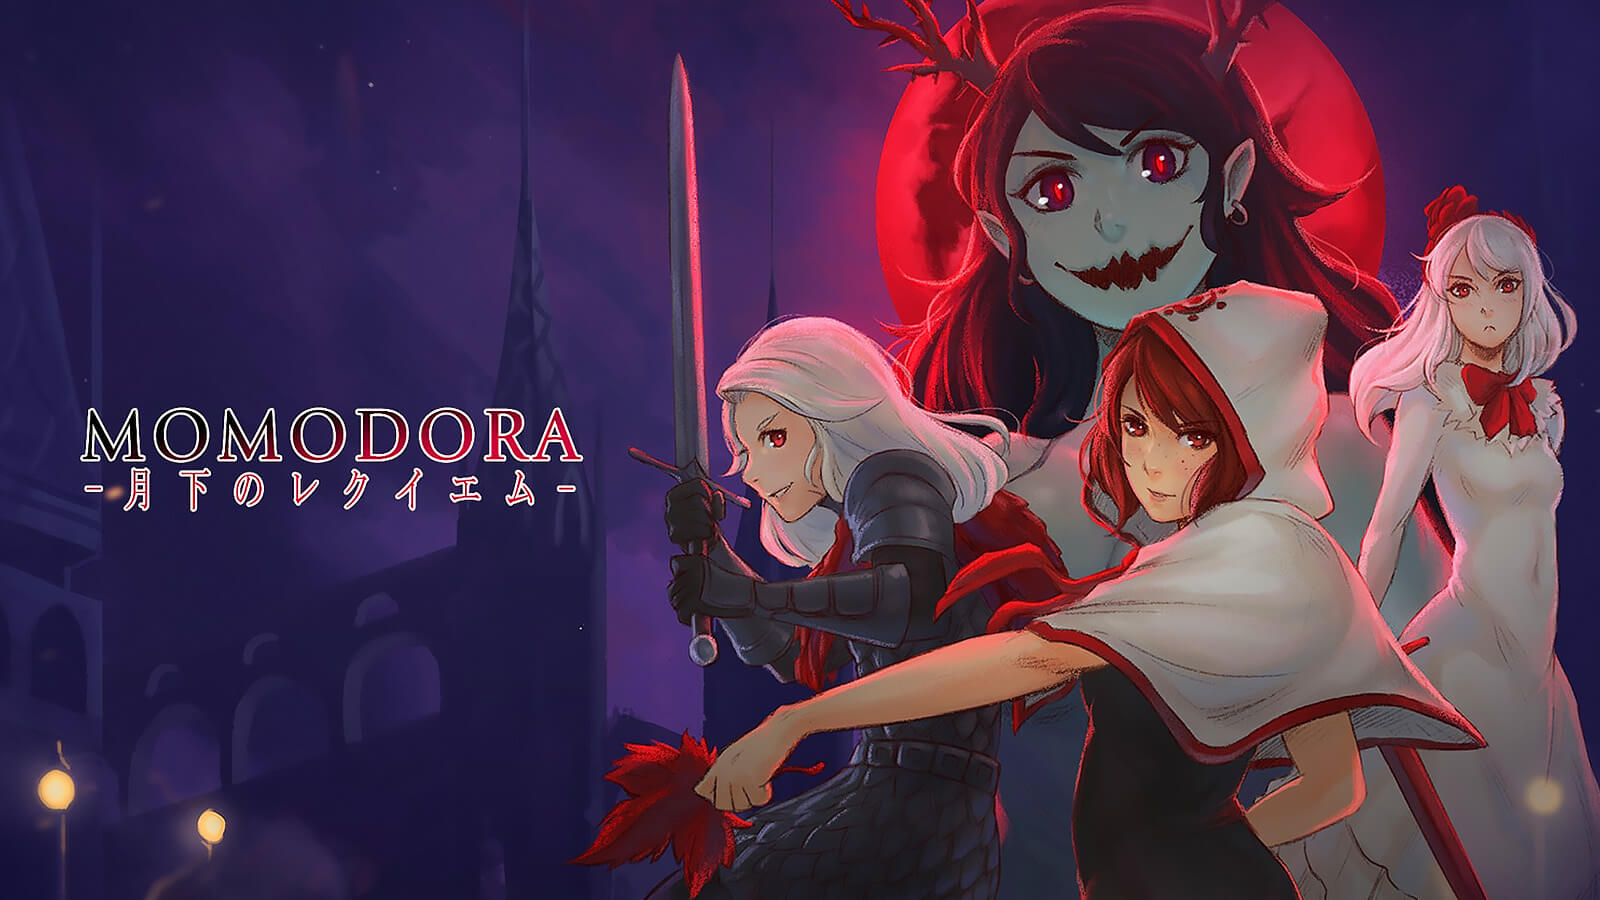 Momodora: Reverie Under the Moonlight promo art for PS4 version